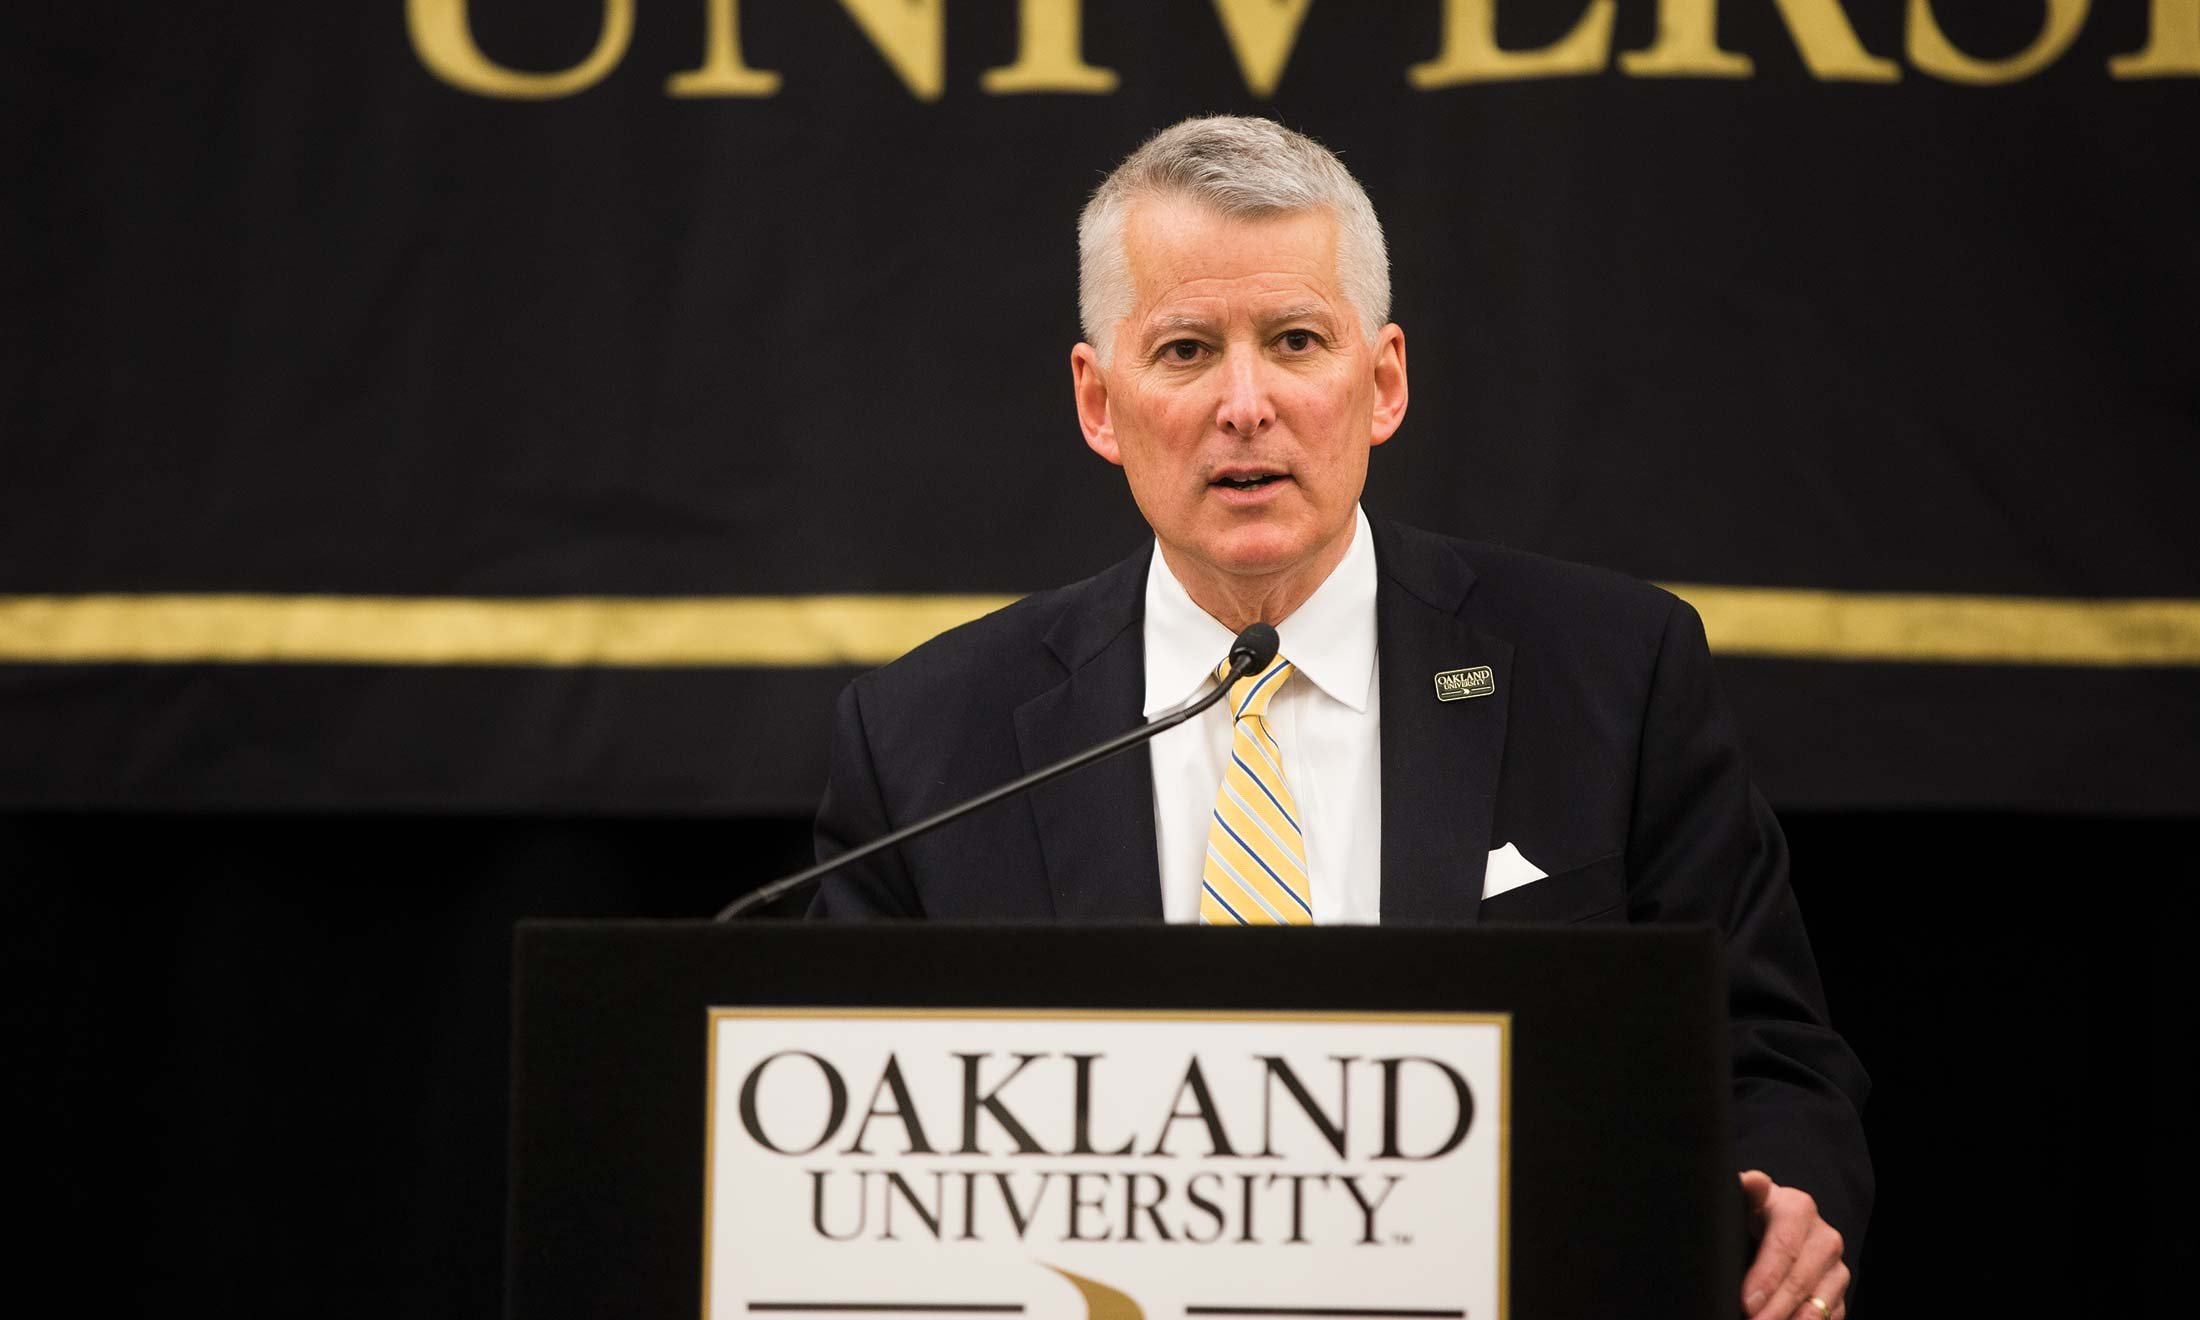 O U Board Chair Richard L. DeVore standing at podium announcing Dr. Ora Hirsch Pescovitz as the seventh president of Oakland University